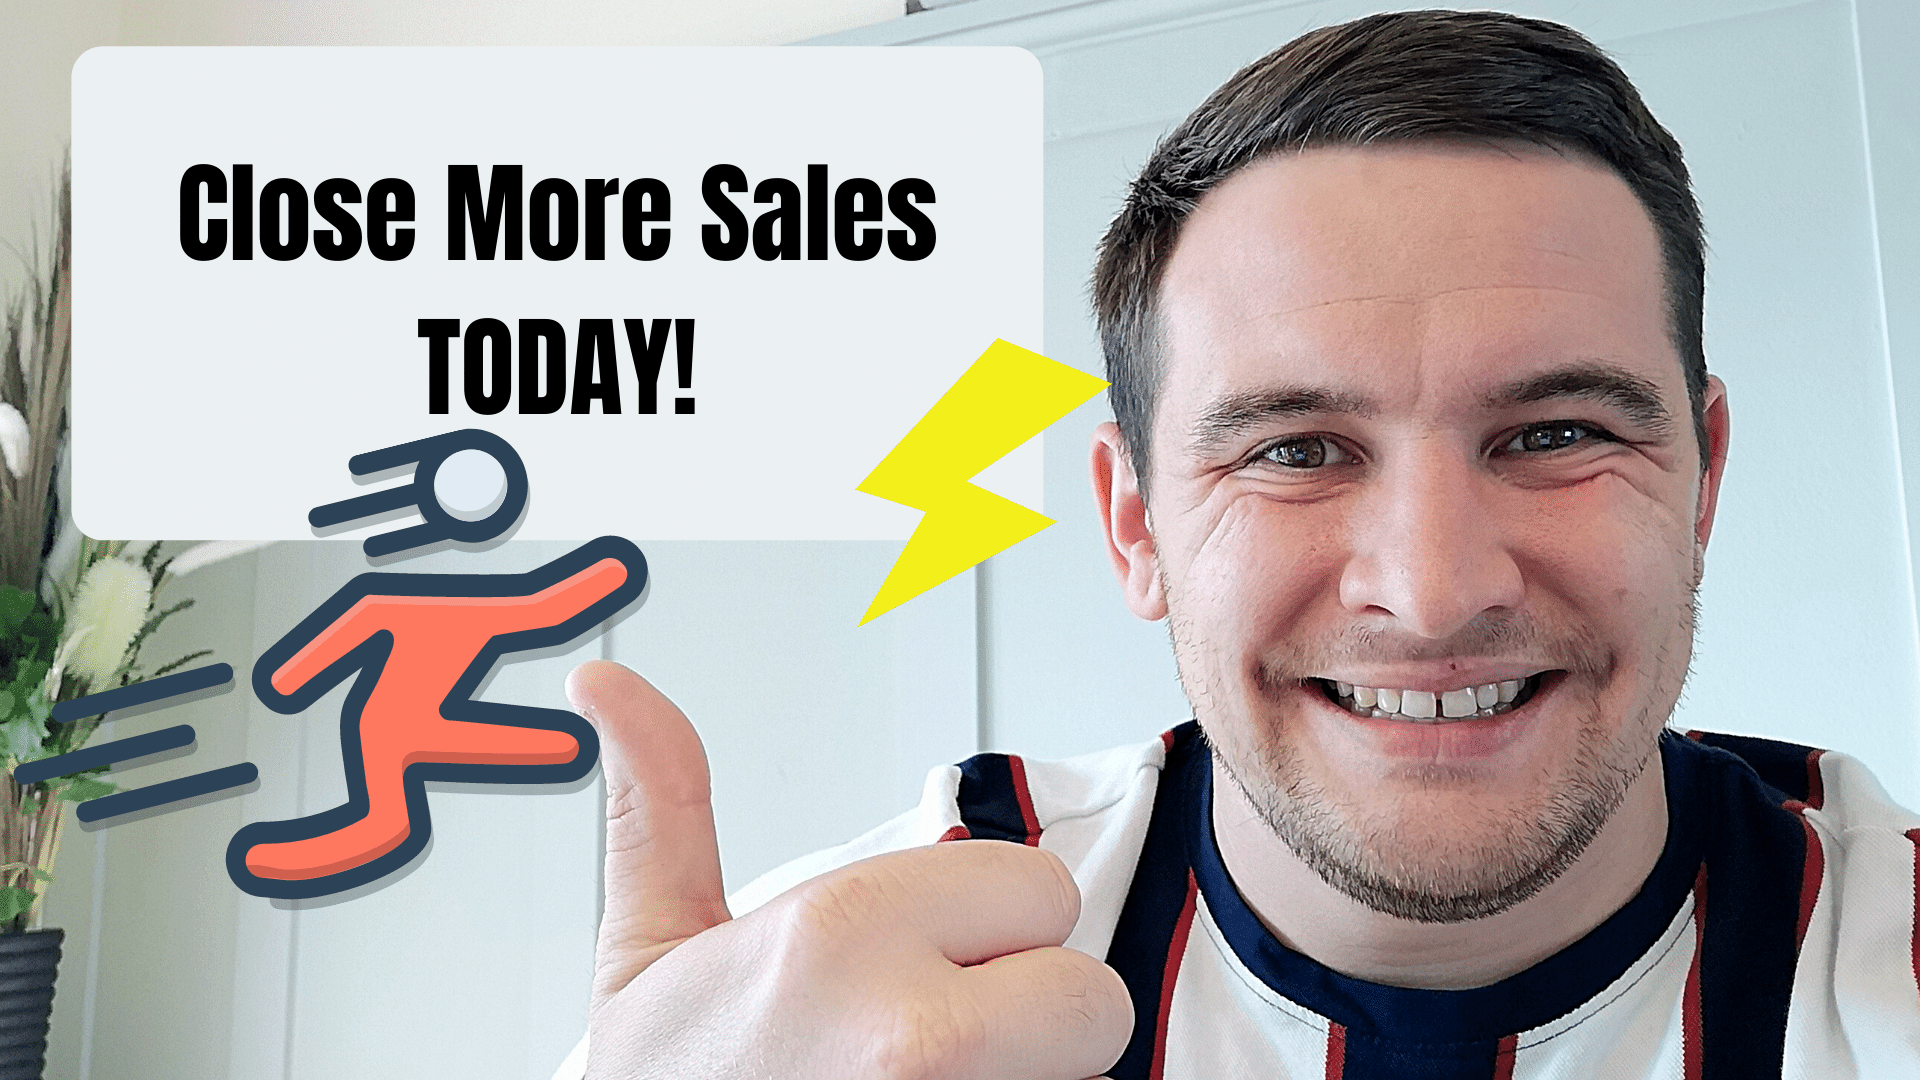 How To Close More Sales Fast With 2 Simple Techniques!